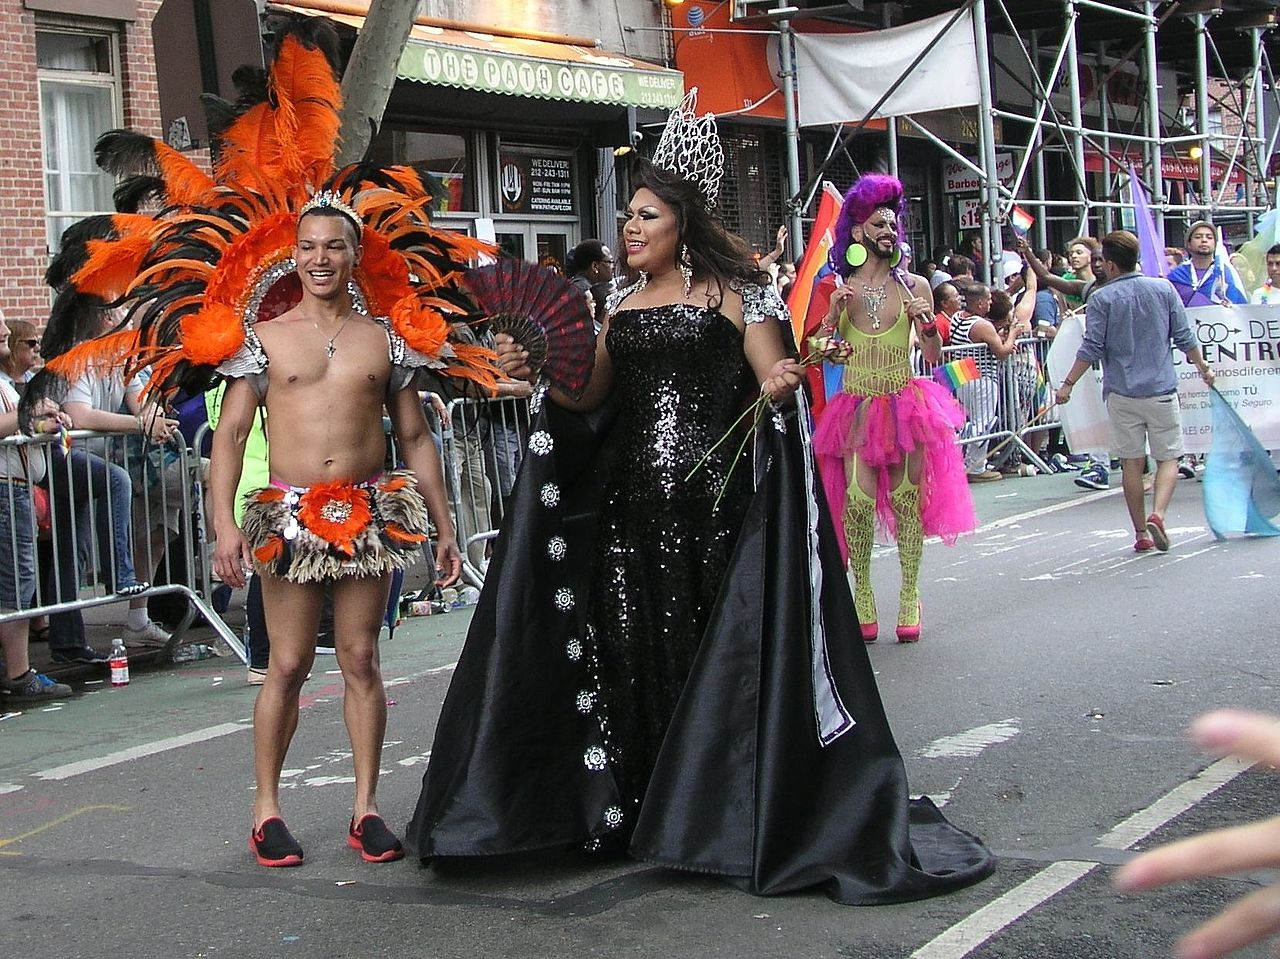 The New York Gay Pride March is a celebration of